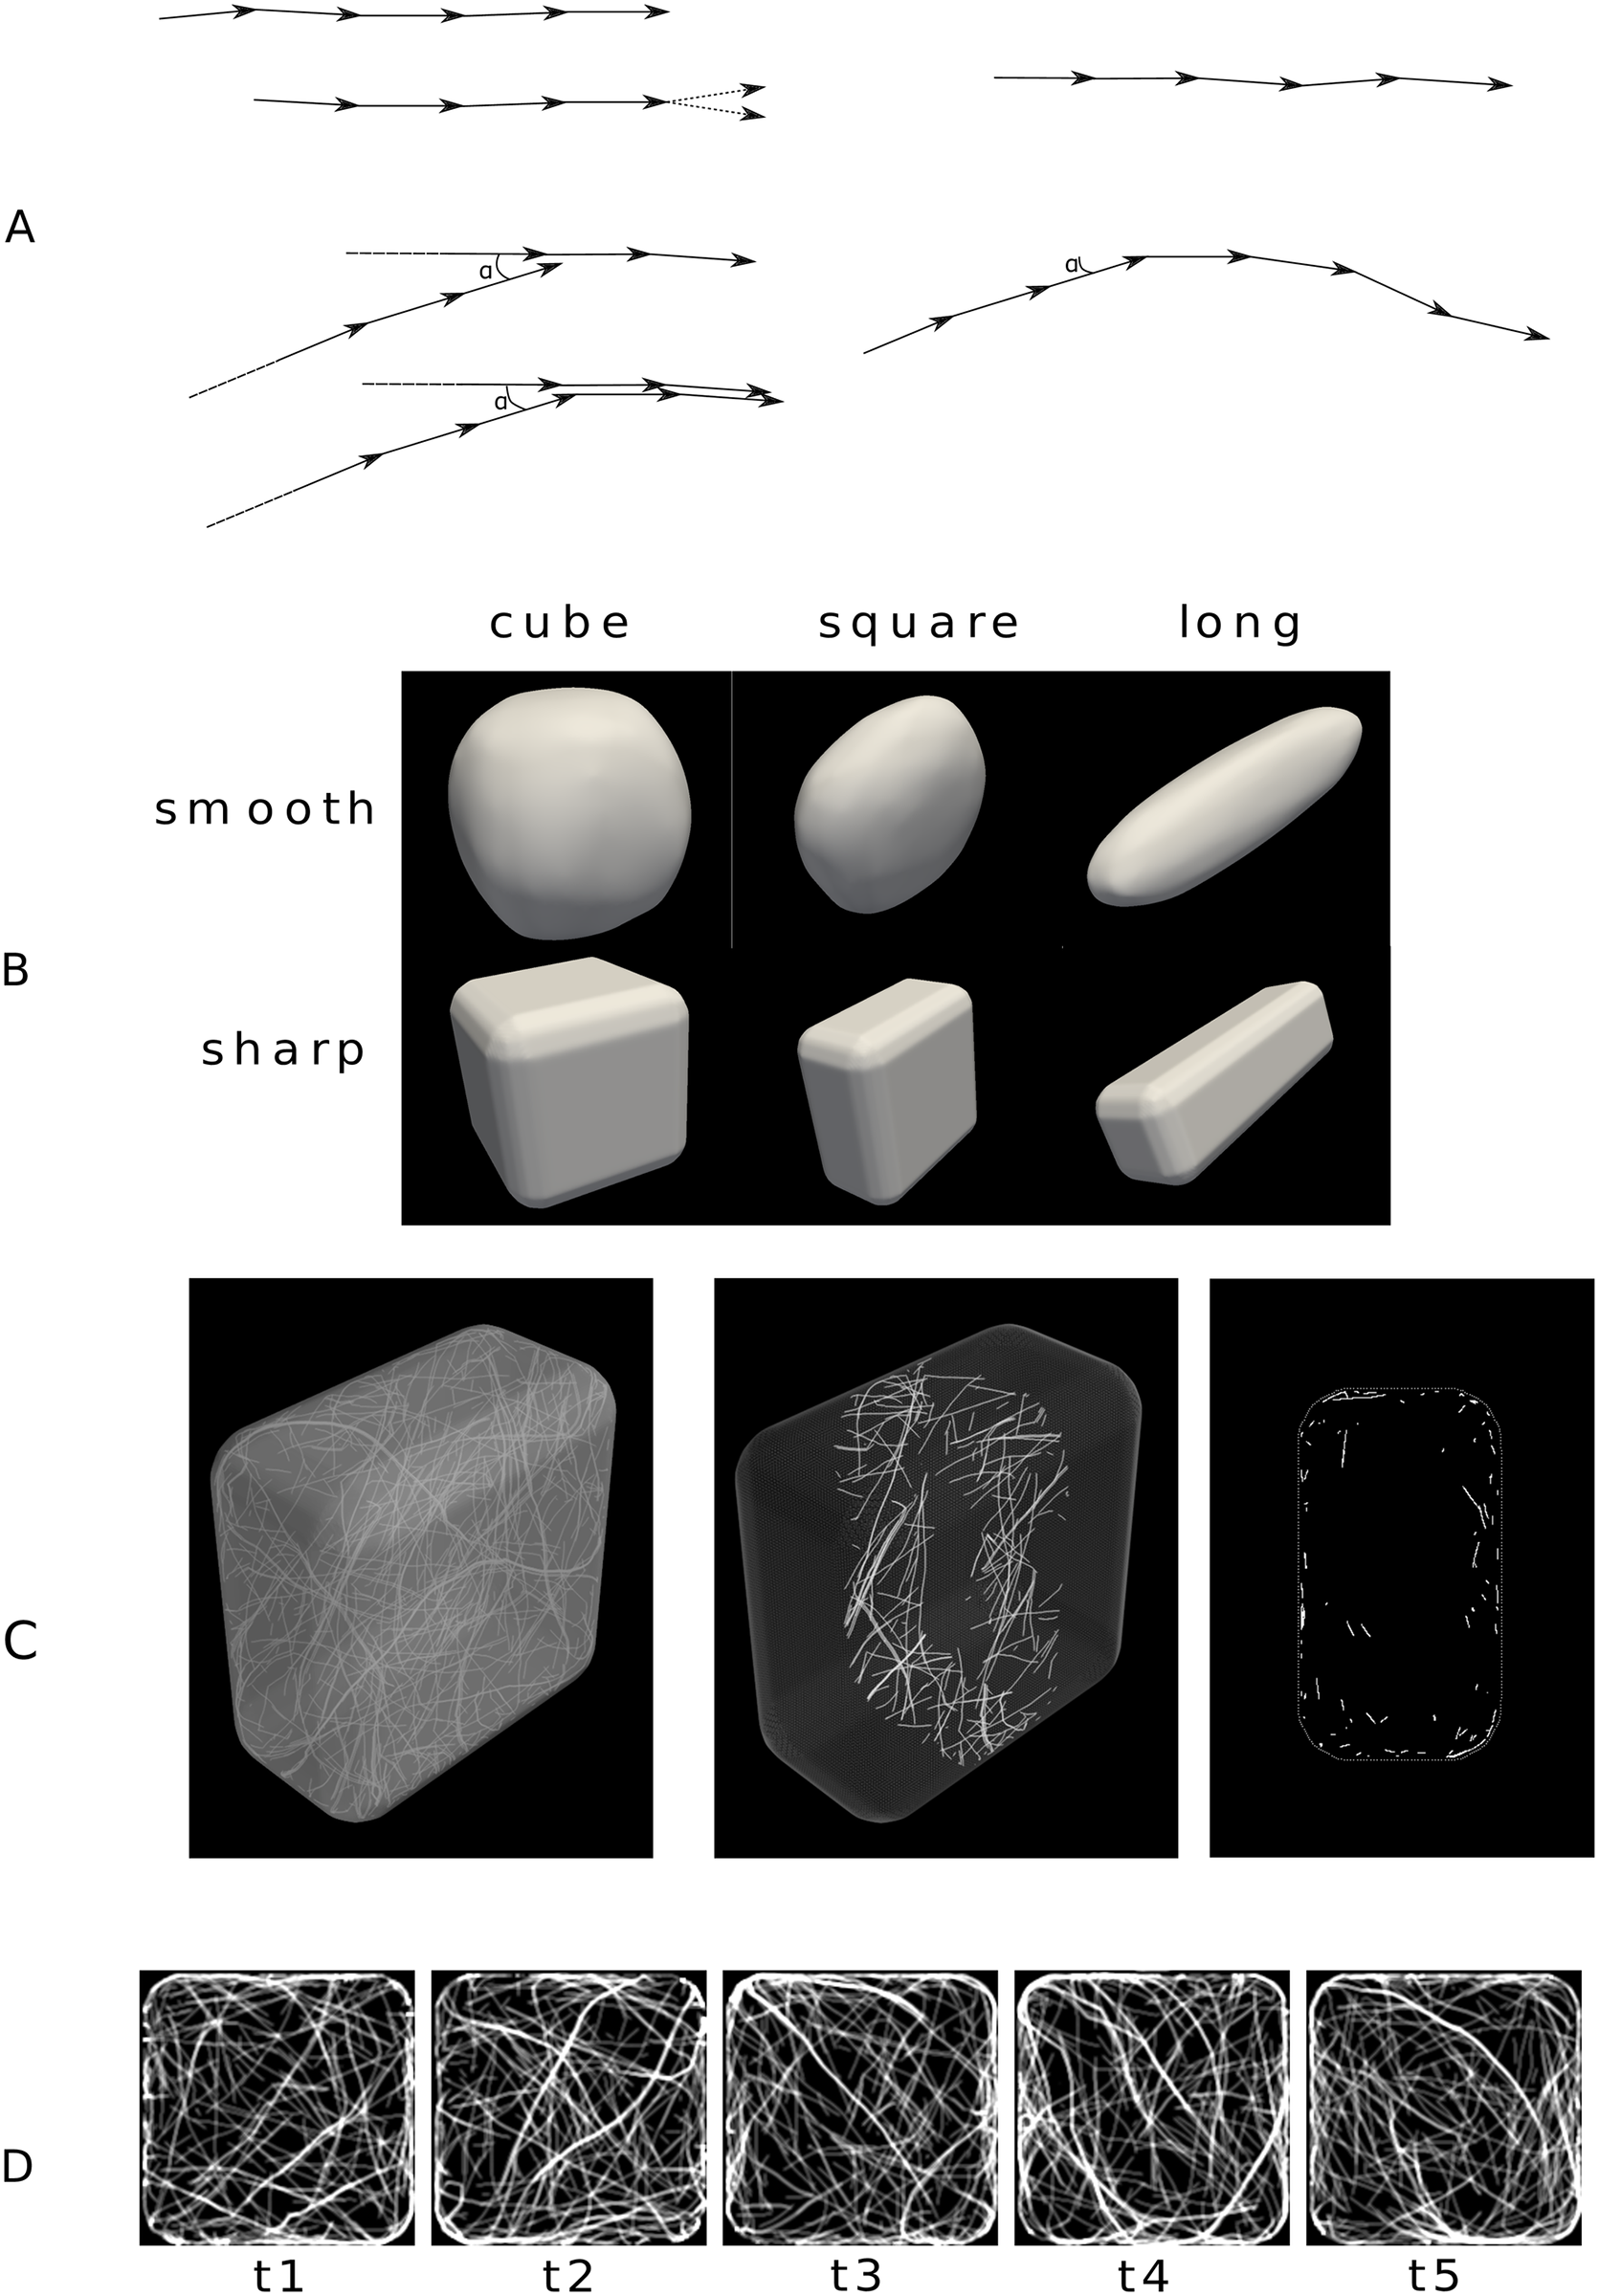 Shapes of simulated cells